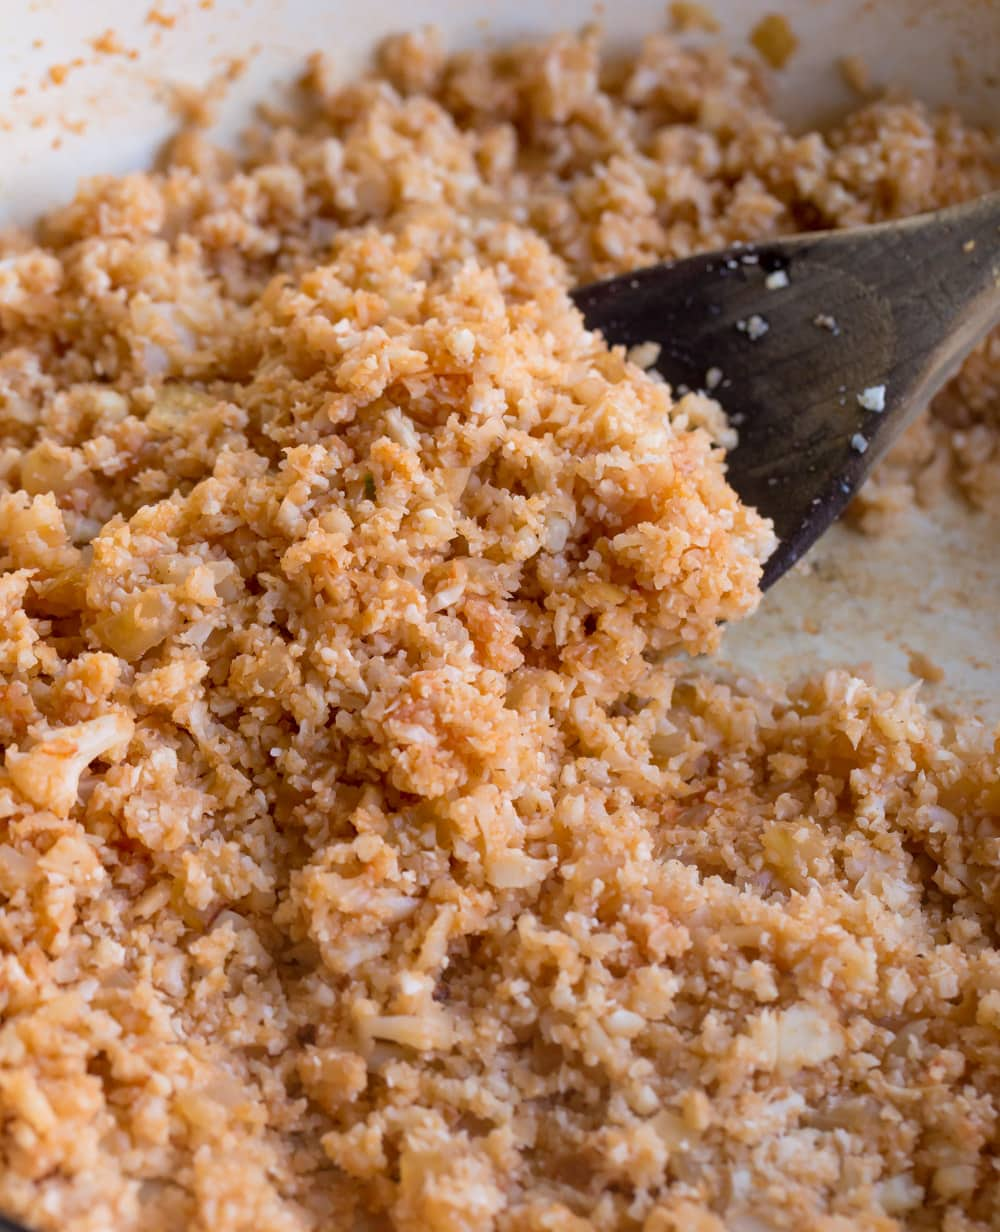 Pan with red riced cauliflower and wooden spoon.